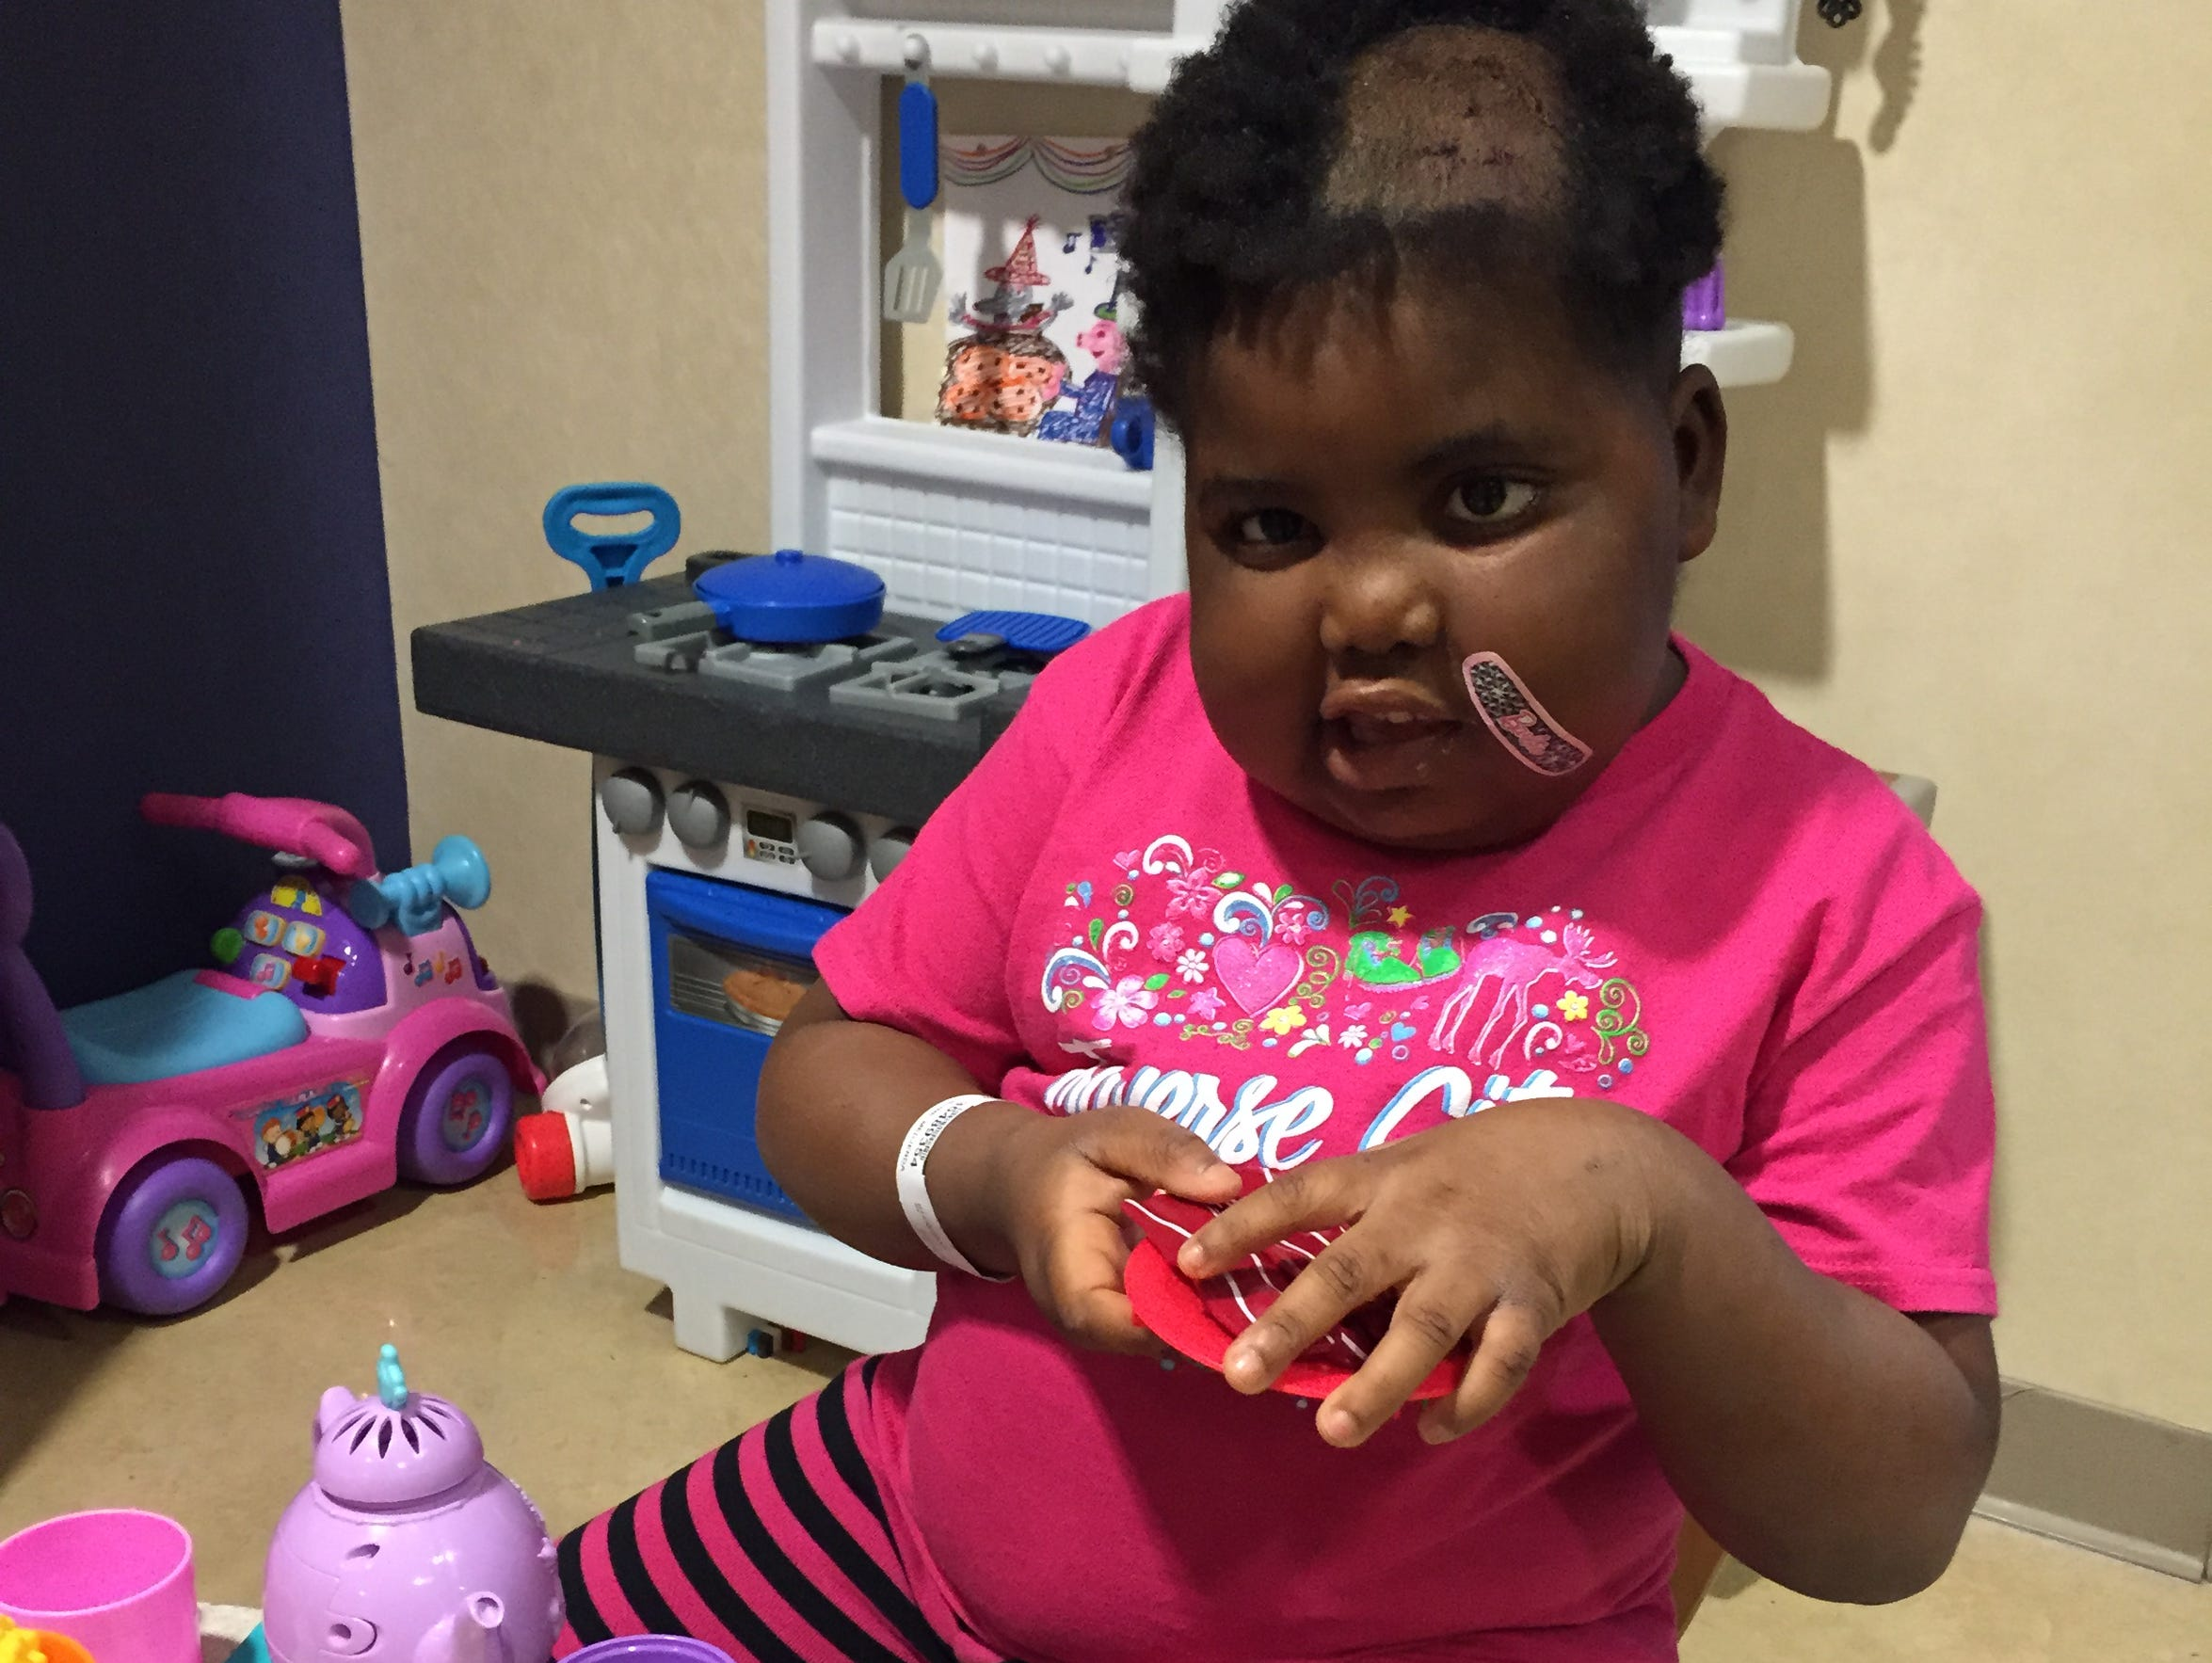 Chika plays after an experimental procedure at Sloan